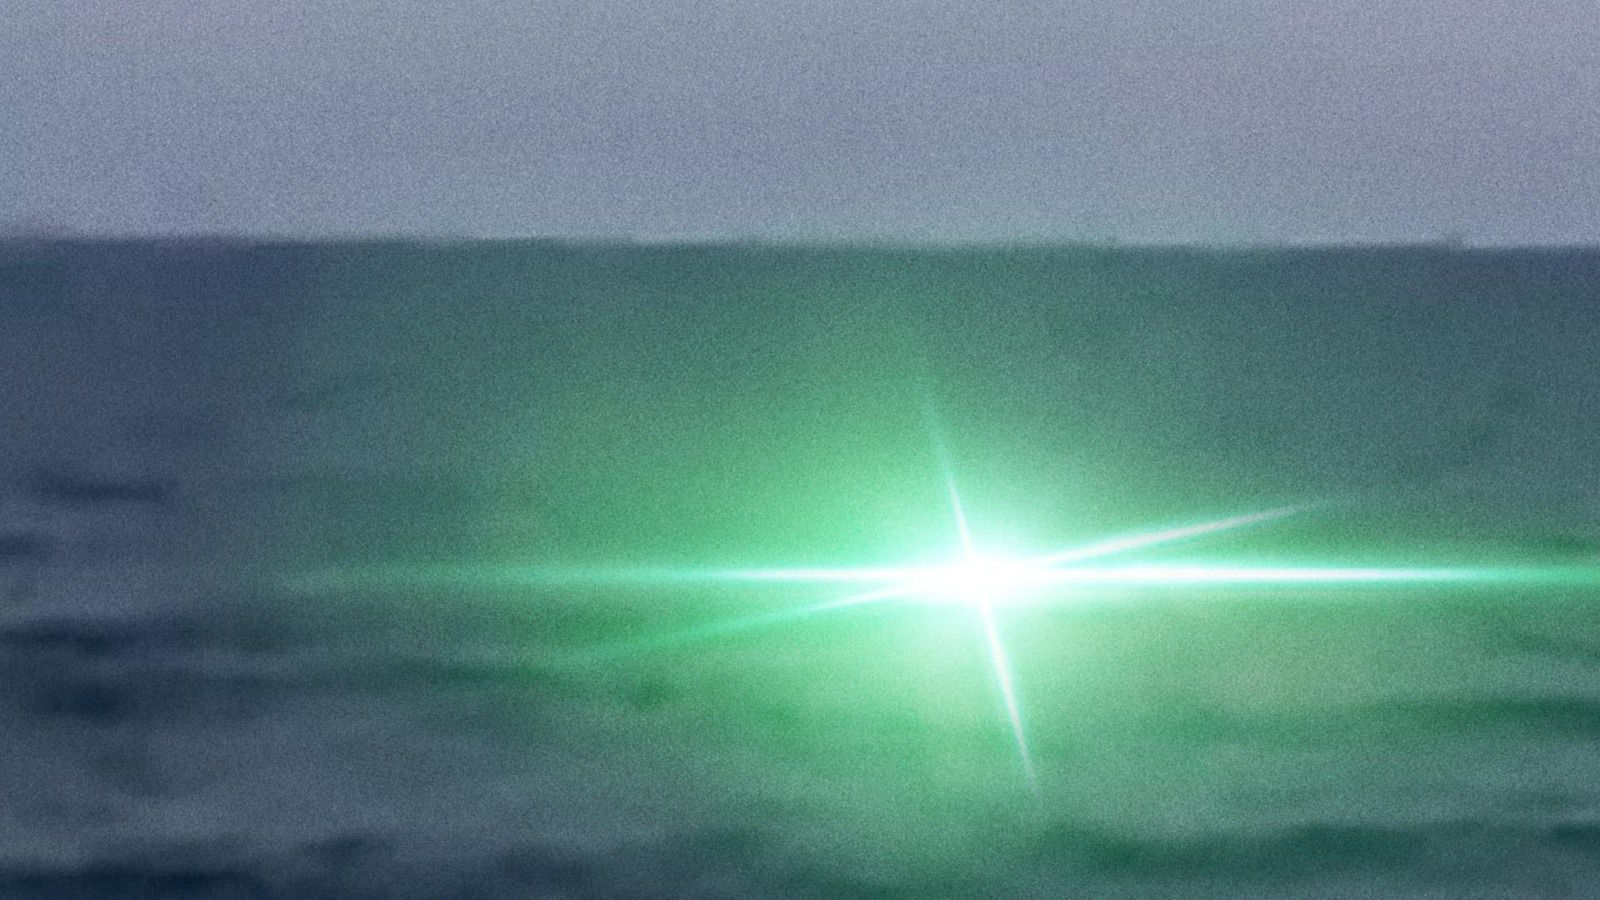 👽 Glowing Object at North Miami Beach or UFO emanating Green Light underwater, Alien origins ?